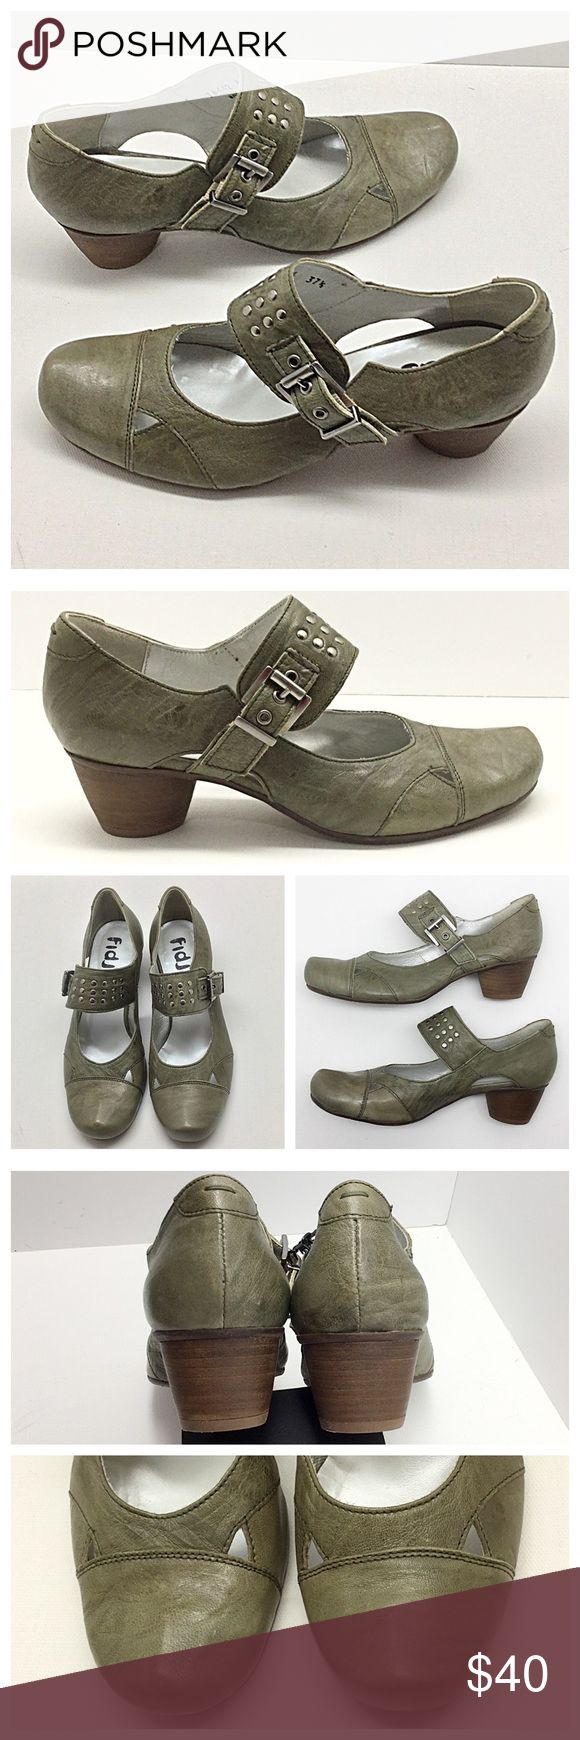 "Fidji Studded Mary Janes 🚫Trades/Holds🚫 Fidji Heels *  Distressed light olive green leather *  Top buckle w/ silver studs *  1 1/2"" round, stacked heel *  Size 37 1/2, true to size IMO *  Pre-loved, heels are excellent - very little wear, leather is supposed to look distressed so it has tonal color variation, a slightly darker spot on one side (pic 4, bottom right) Plz ask ?s if unsure of condition or need more pics! Fidji Shoes Heels"